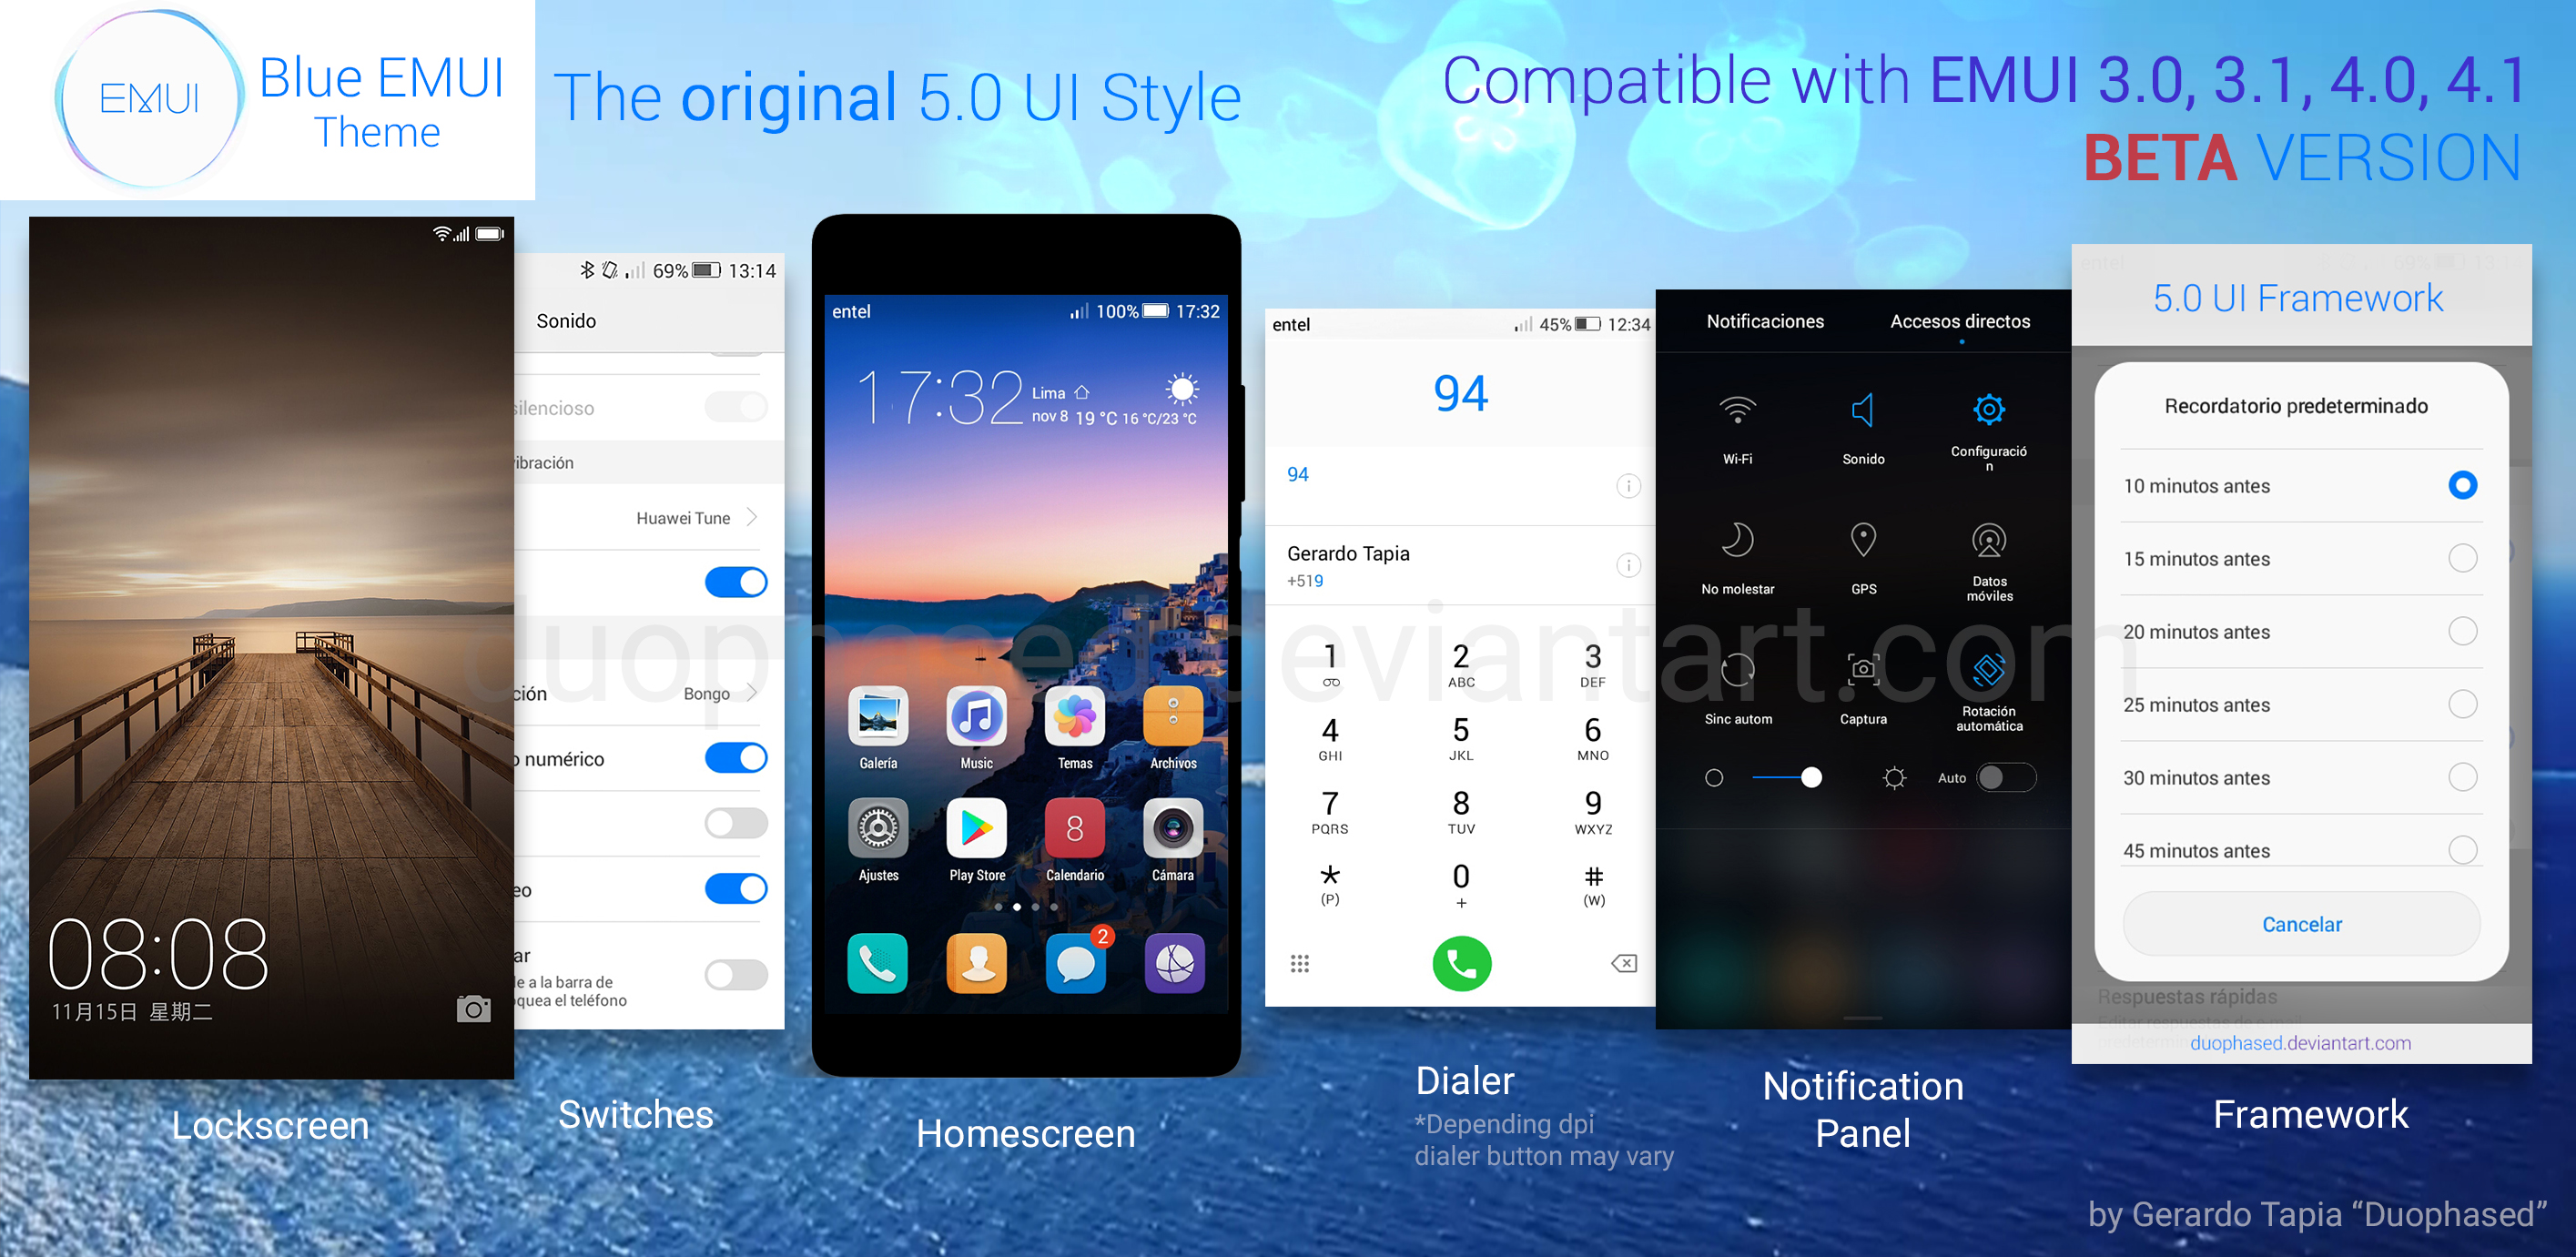 Blue EMUI Theme 5 0 UI by Duophased on DeviantArt